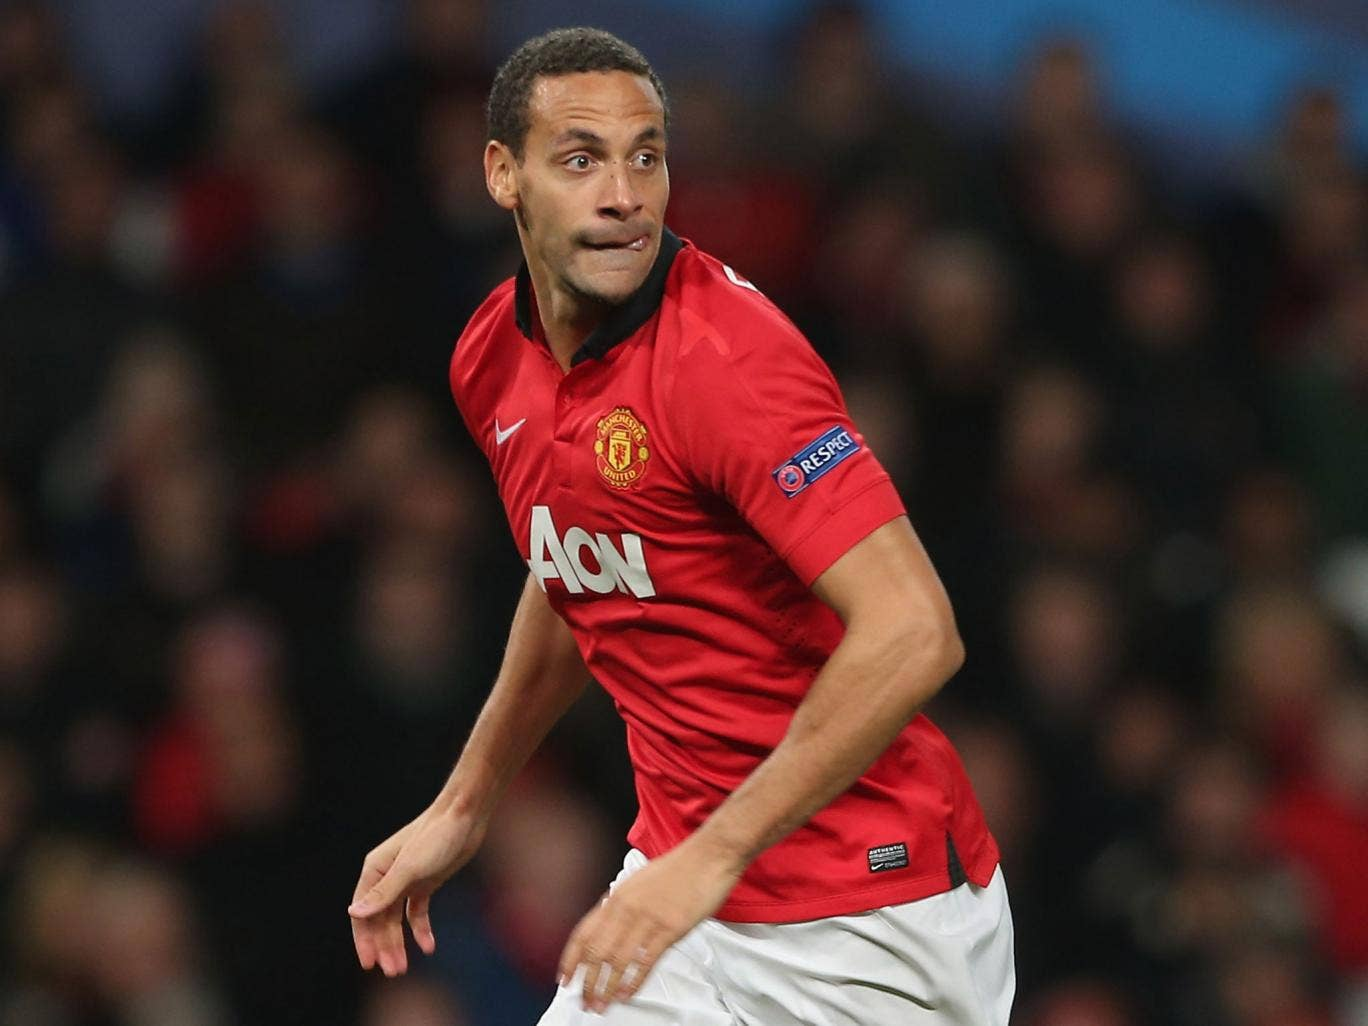 Rio Ferdinand could retire at the end of the season when his Manchester united contract expires to move into TV punditry